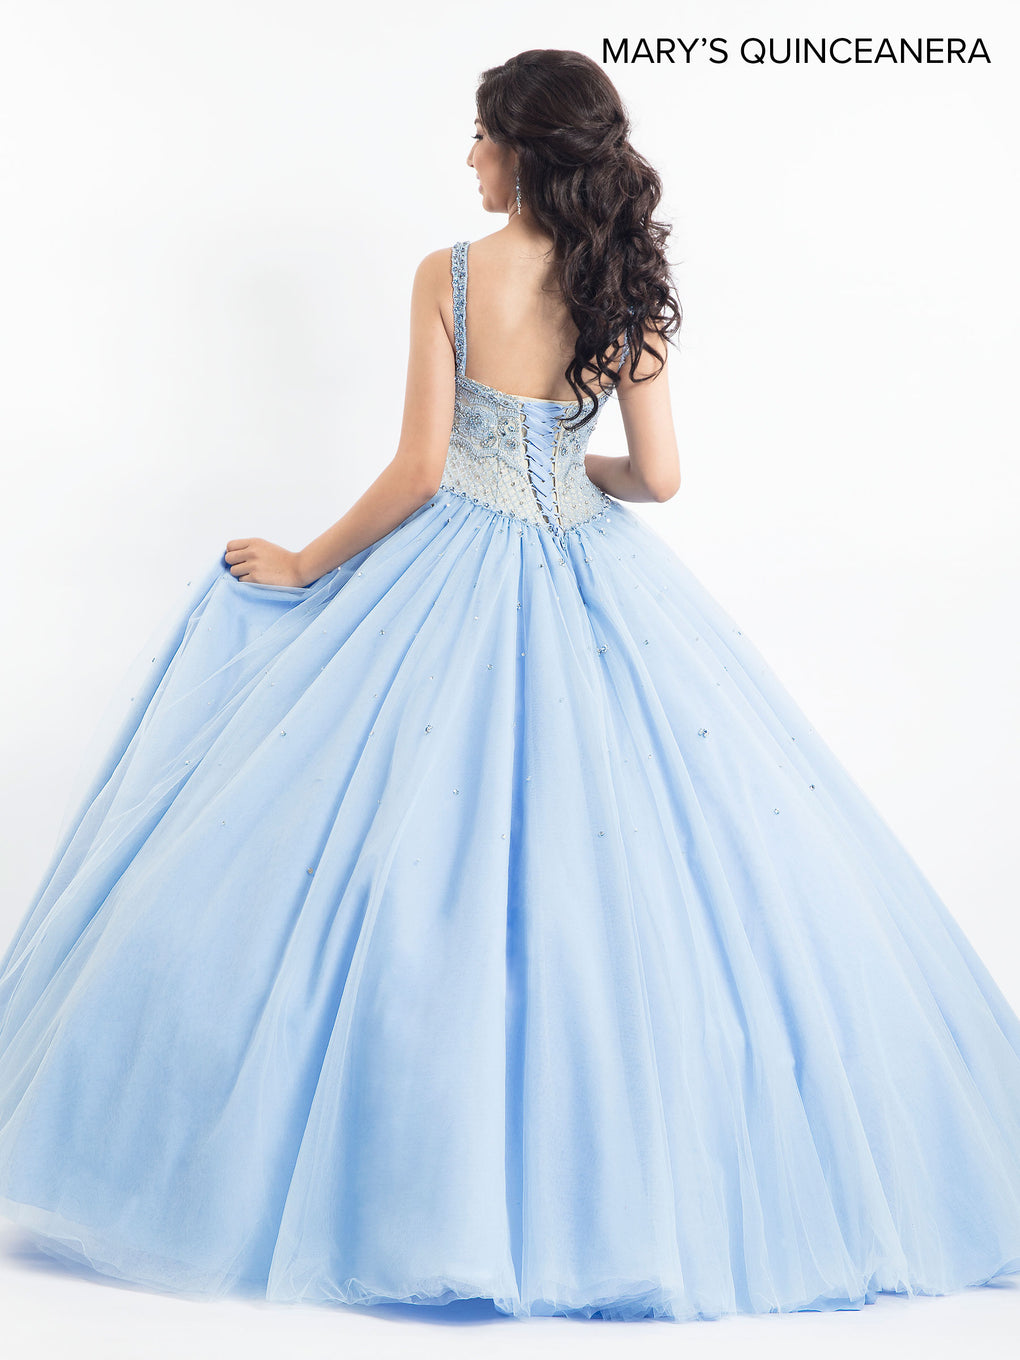 Marys Quinceanera Dresses in Light Blue, Pink, or Champagne Color